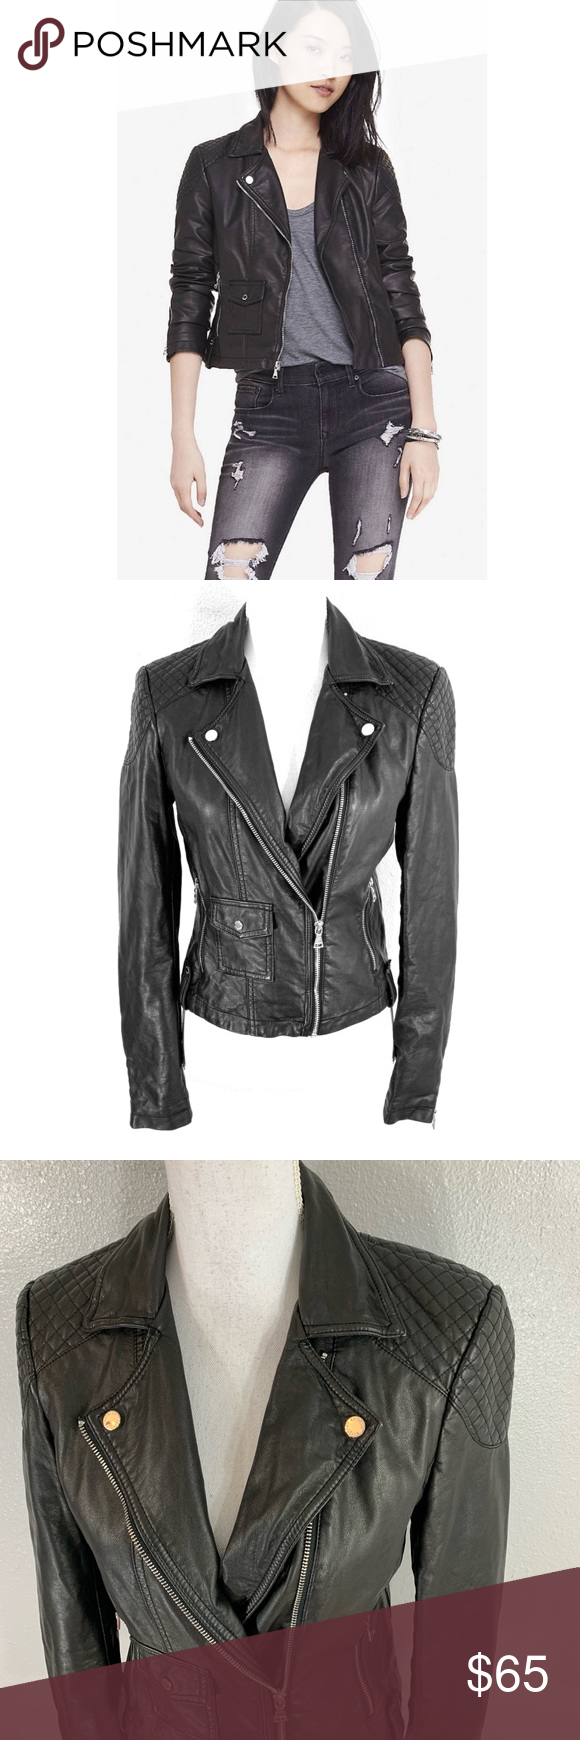 Express Faux Leather Quilted Shoulder Moto Jacket Express Black Faux Leather Quilted Shoulder Moto Jacket Zipper Pockets And Jackets Black Leather Moto Jacket [ 1740 x 580 Pixel ]